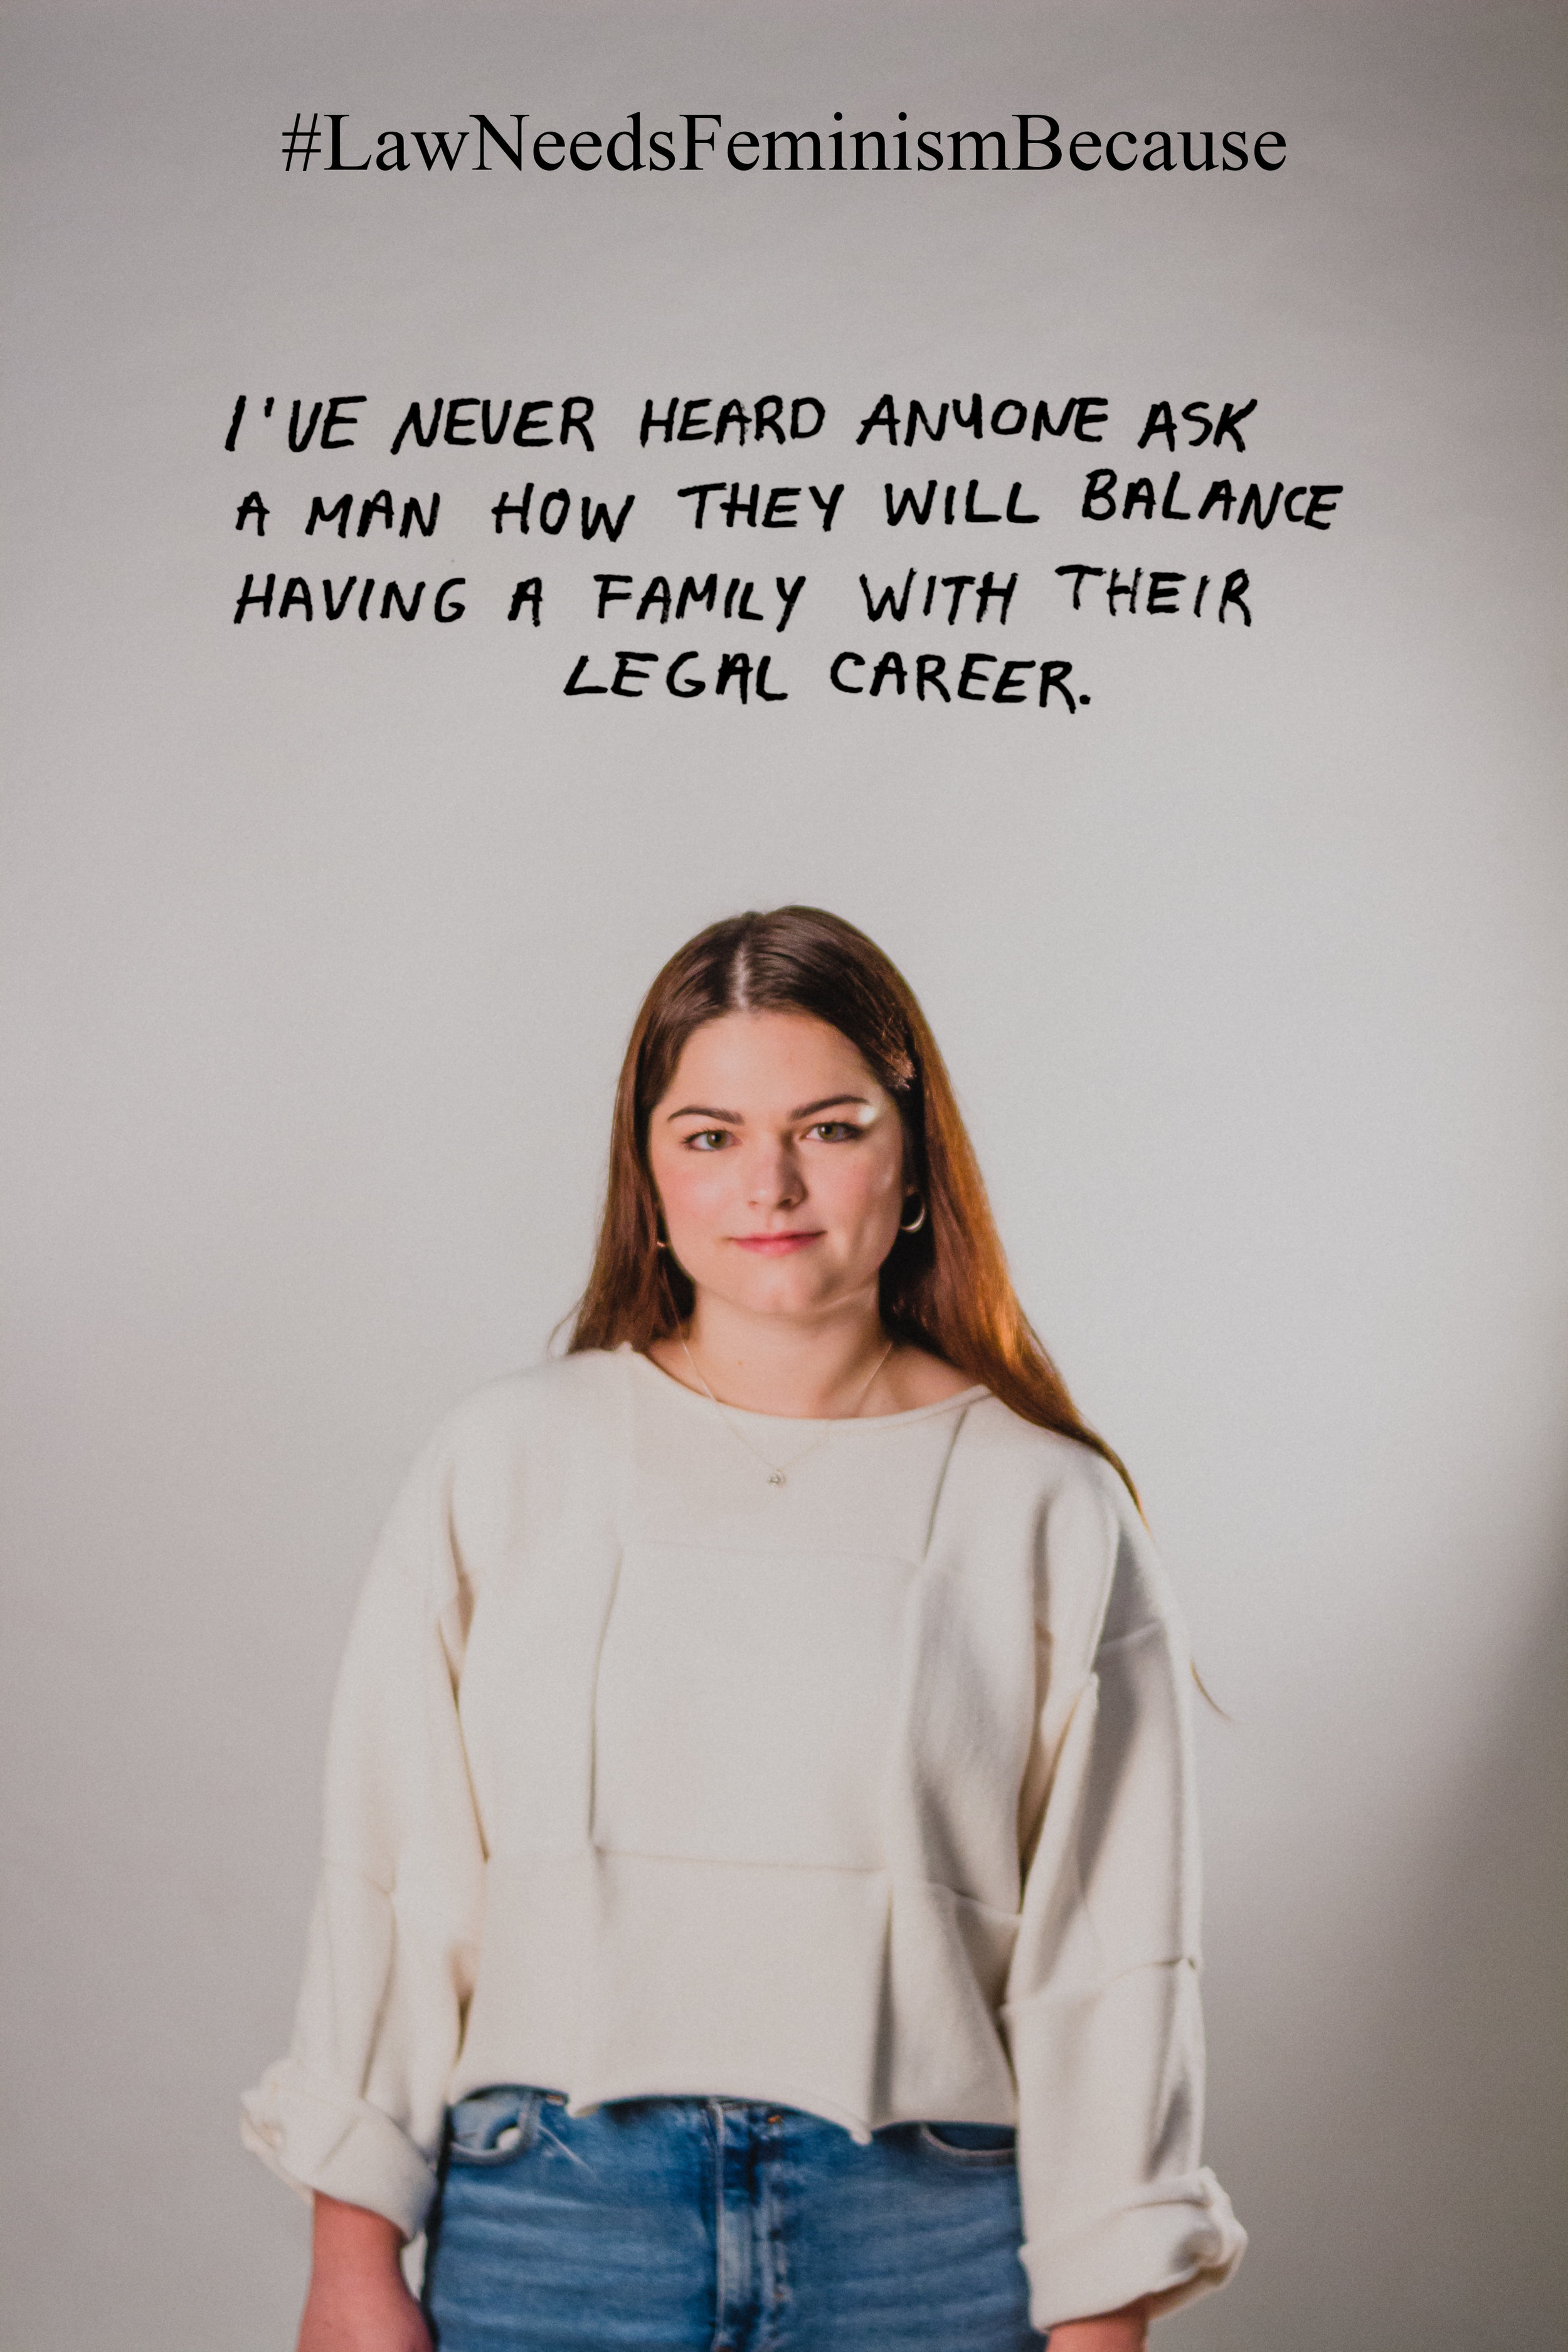 """Law Needs Feminism Because  """"I've never heard anyone as a man how they will balance having a family with their legal career."""""""